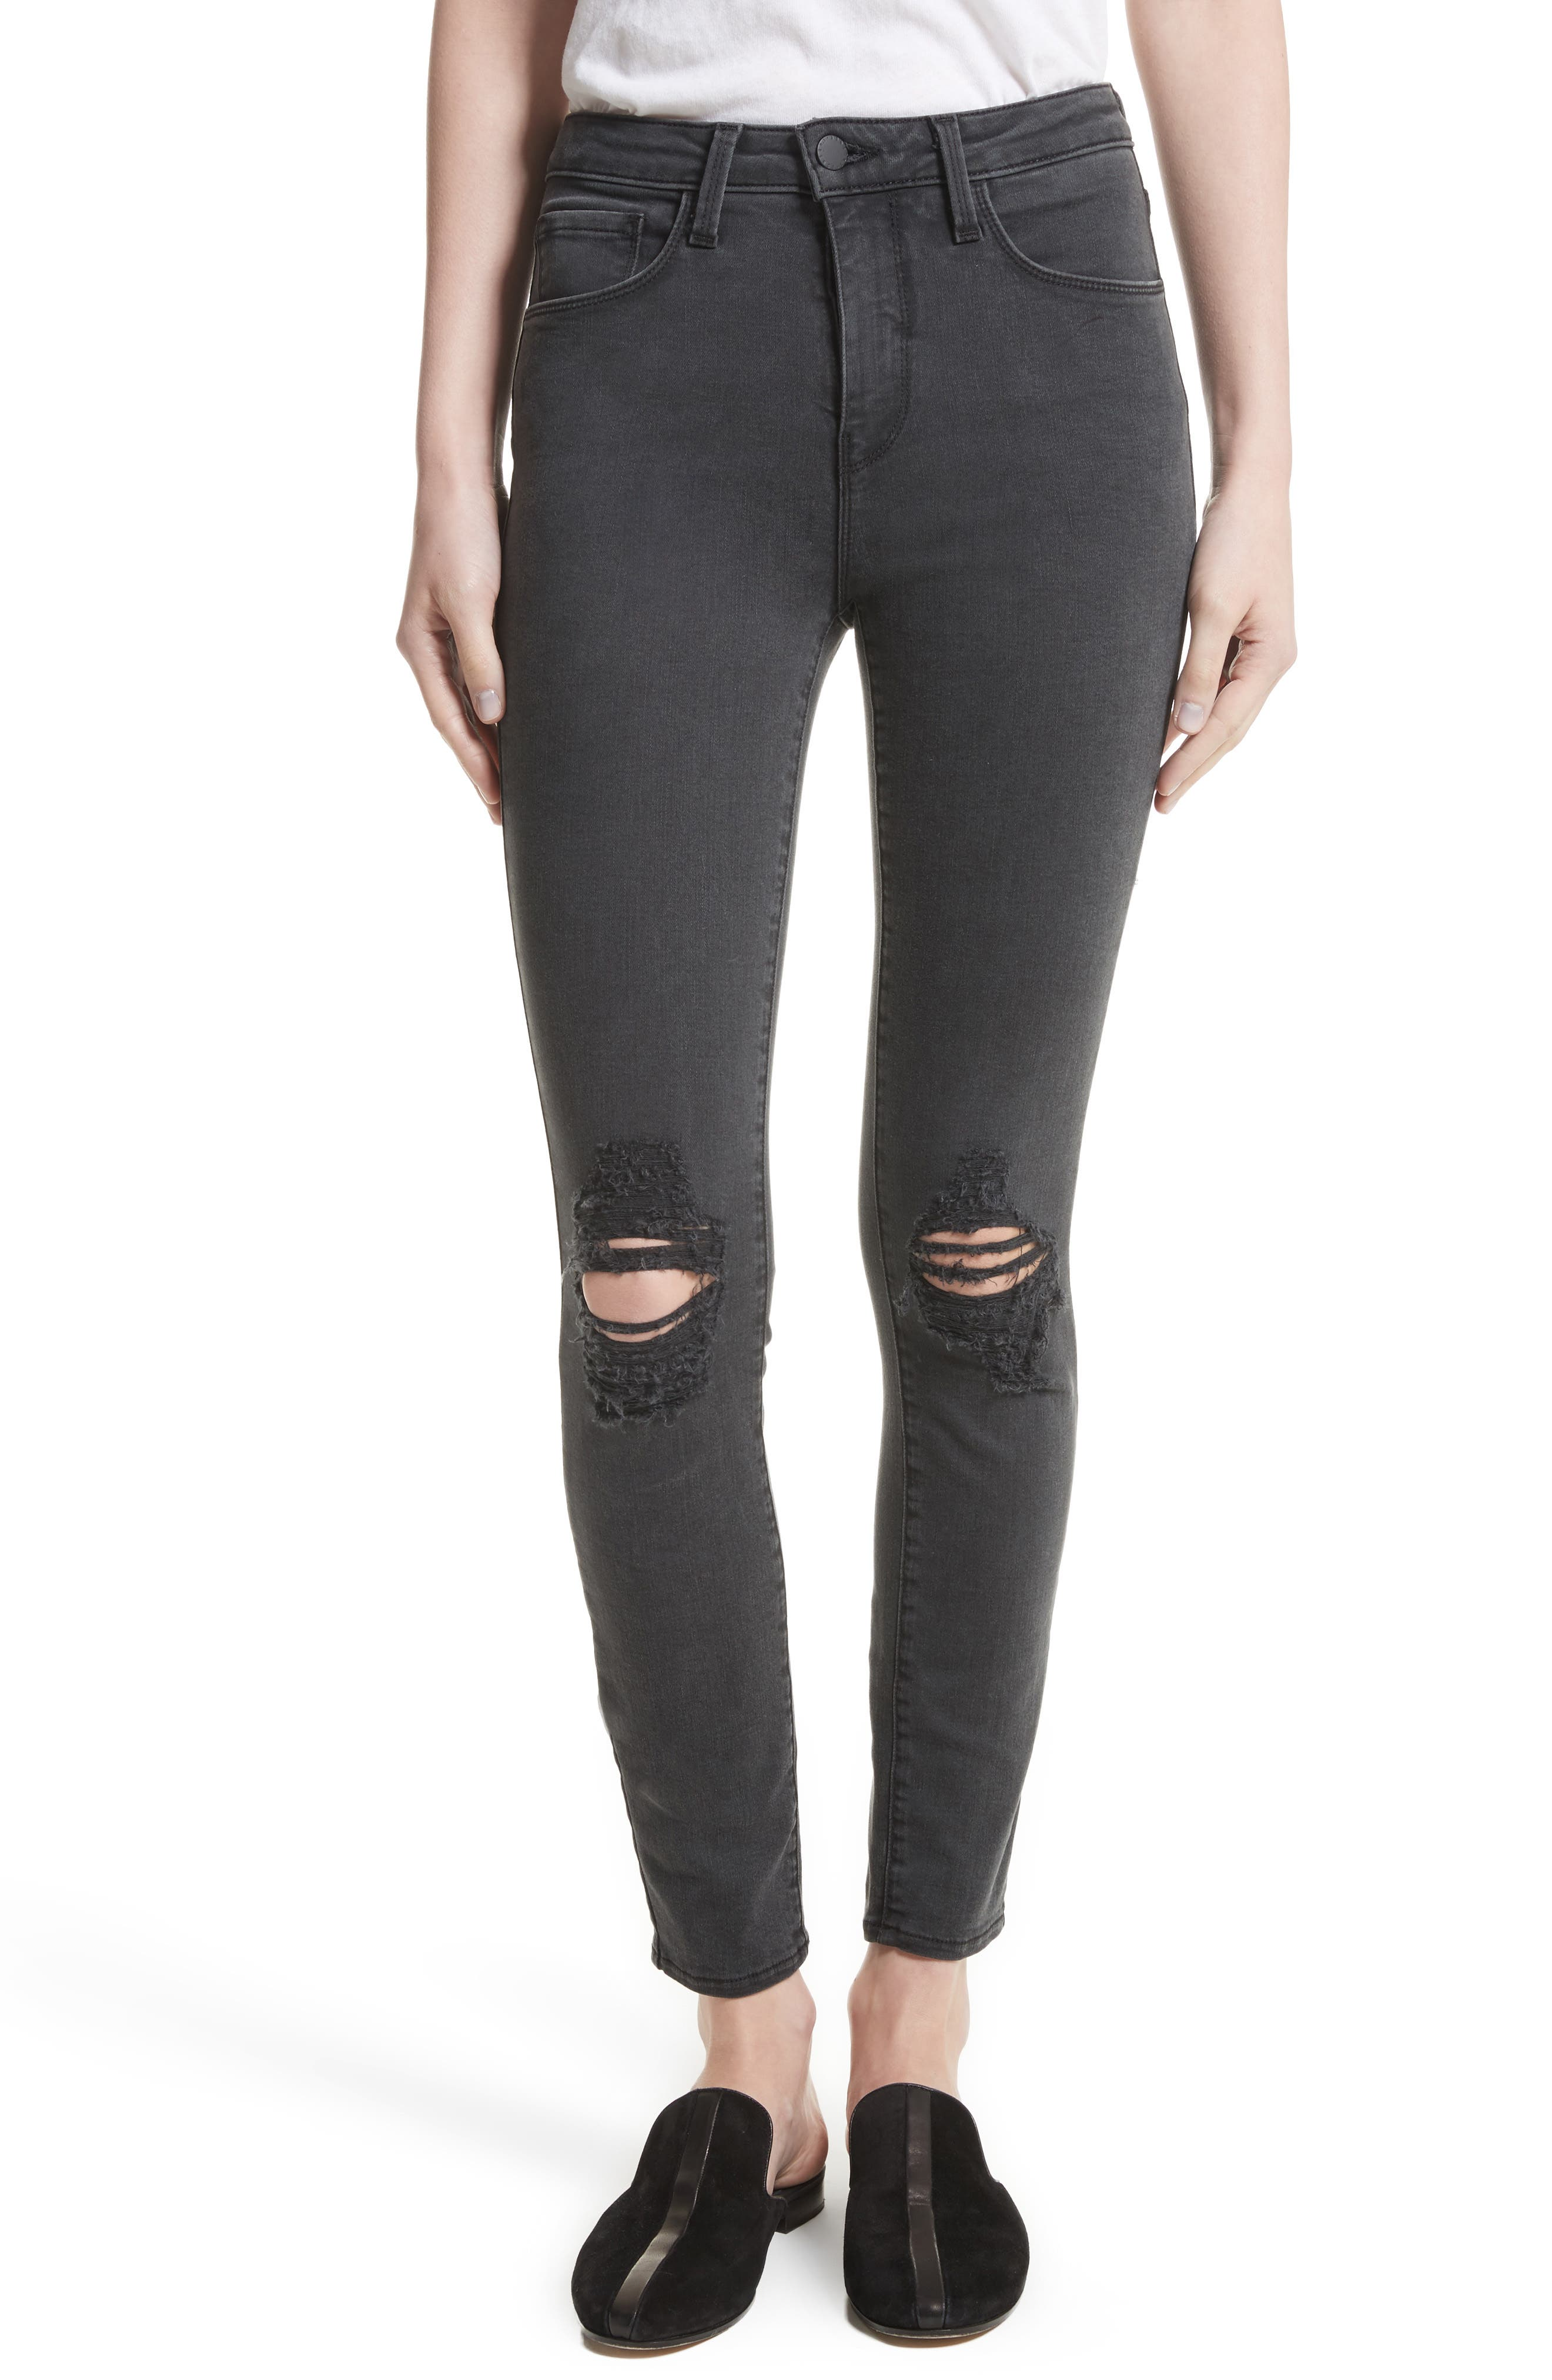 Main Image - L'AGENCE Margot Ripped High Waist Skinny Jeans (Coal Destruct)